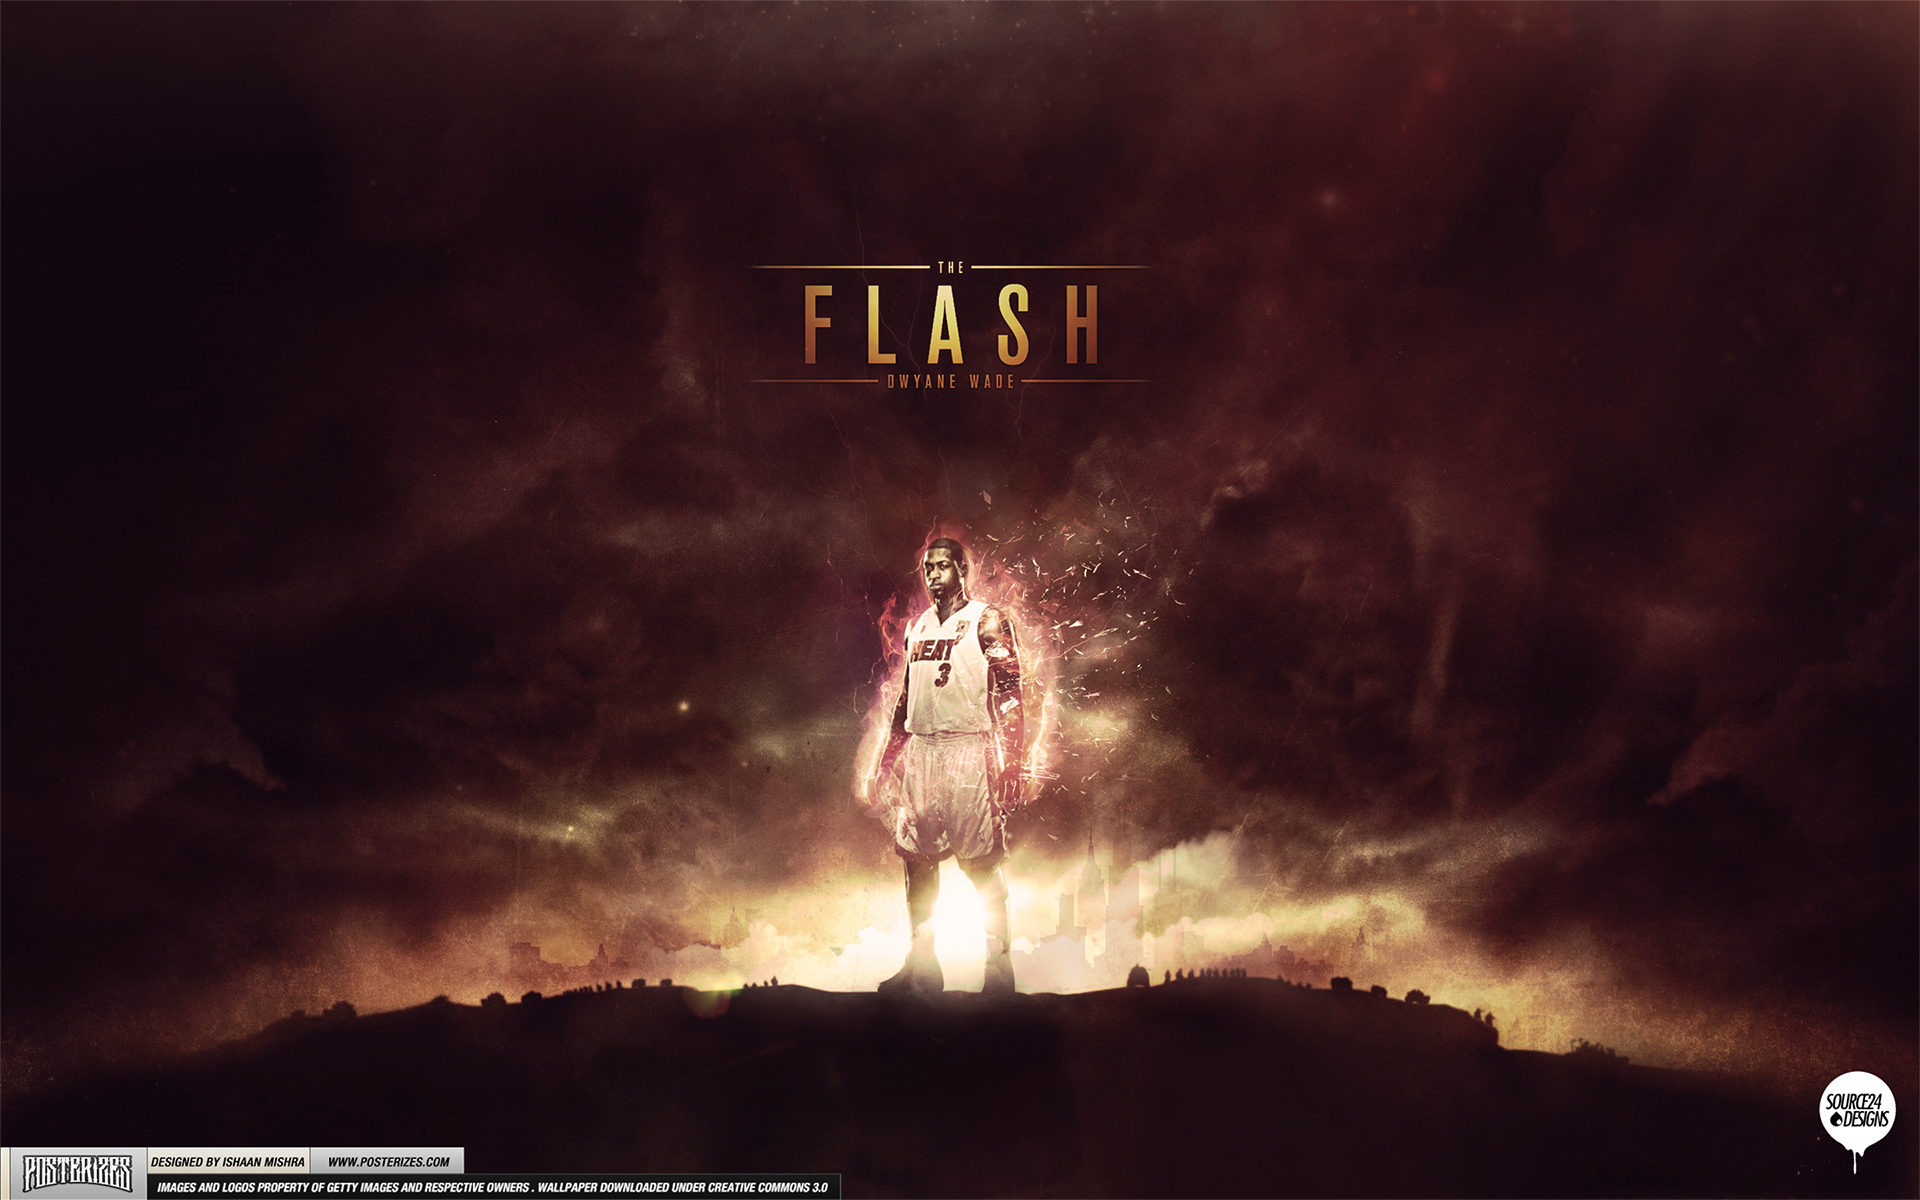 Dwyane Wade 'The Flash' Wallpaper by IshaanMishra